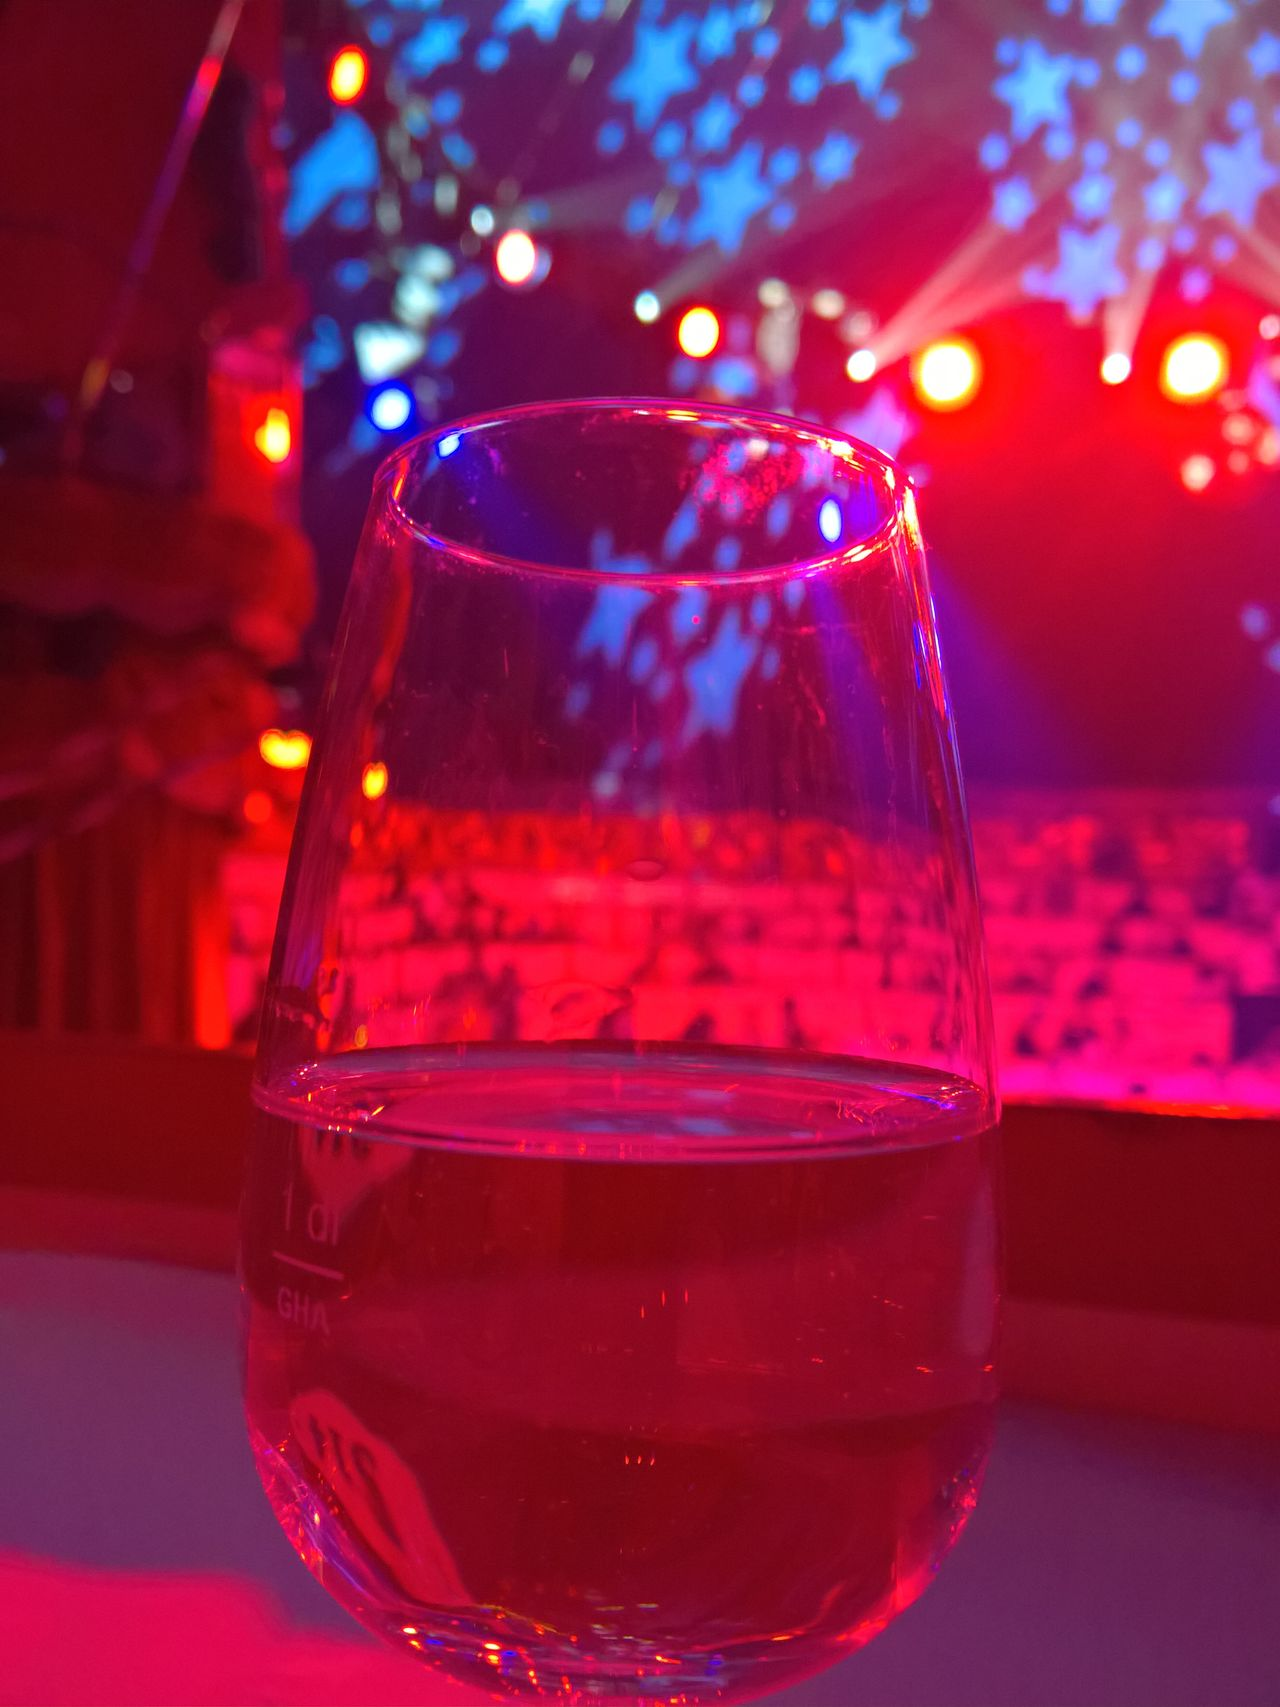 Arts Culture And Entertainment Cabaret Celebration Celebration Event Circus Drink Drinking Glass Entertainment Entertainment Event Fascination Glass Illuminated Light Effect Lighting Equipment Performance Stage - Performance Space Stage Light Unedited Photo